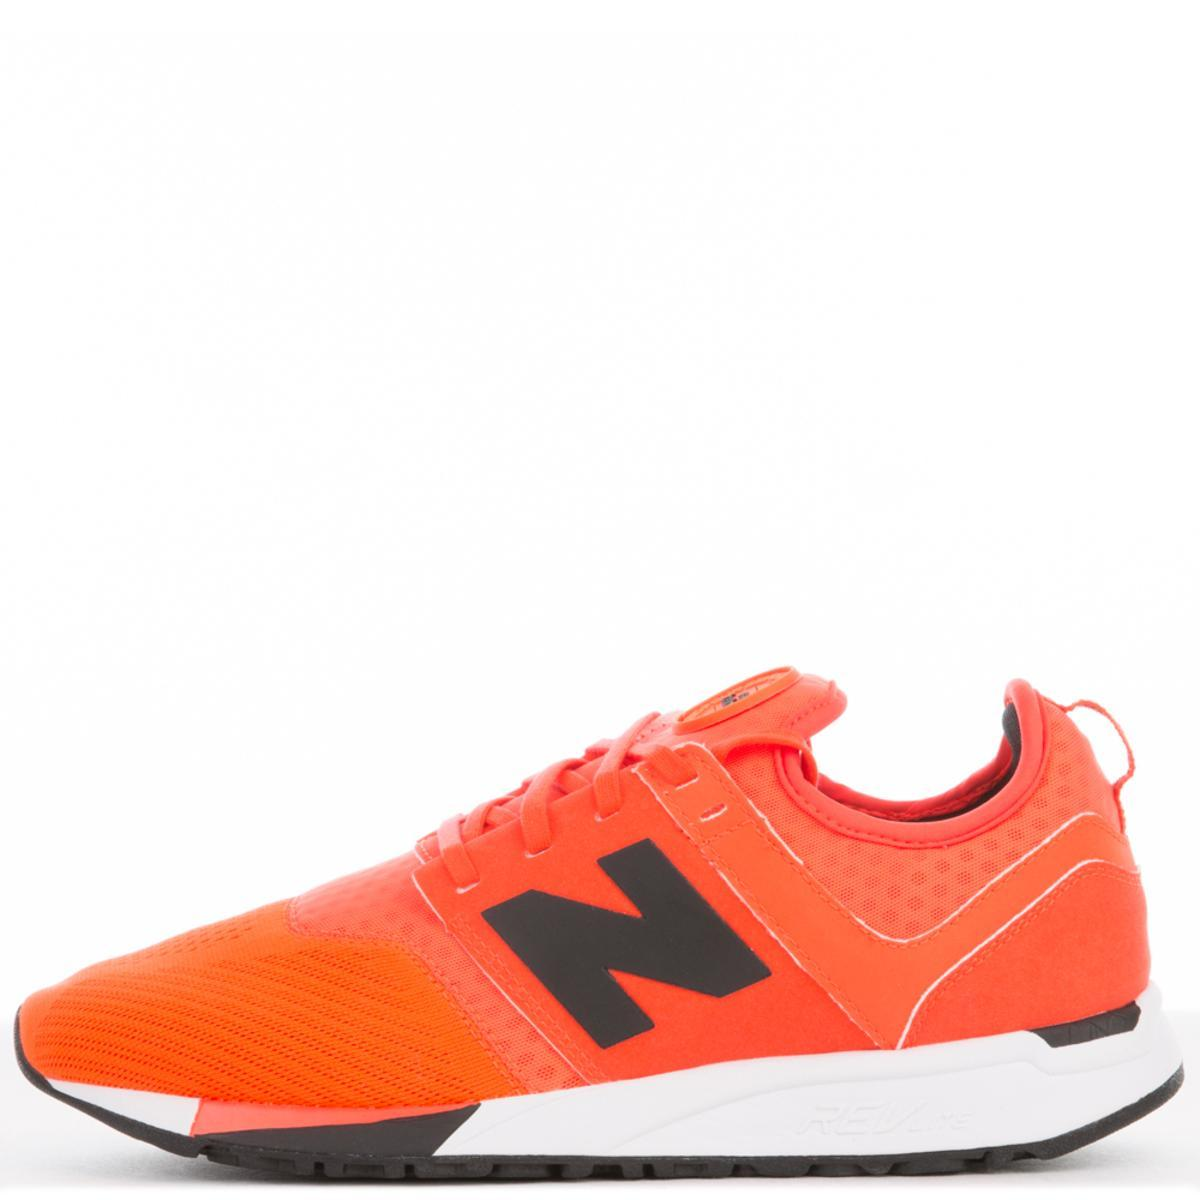 Men's 247 Sport Orange/Black Sneakers